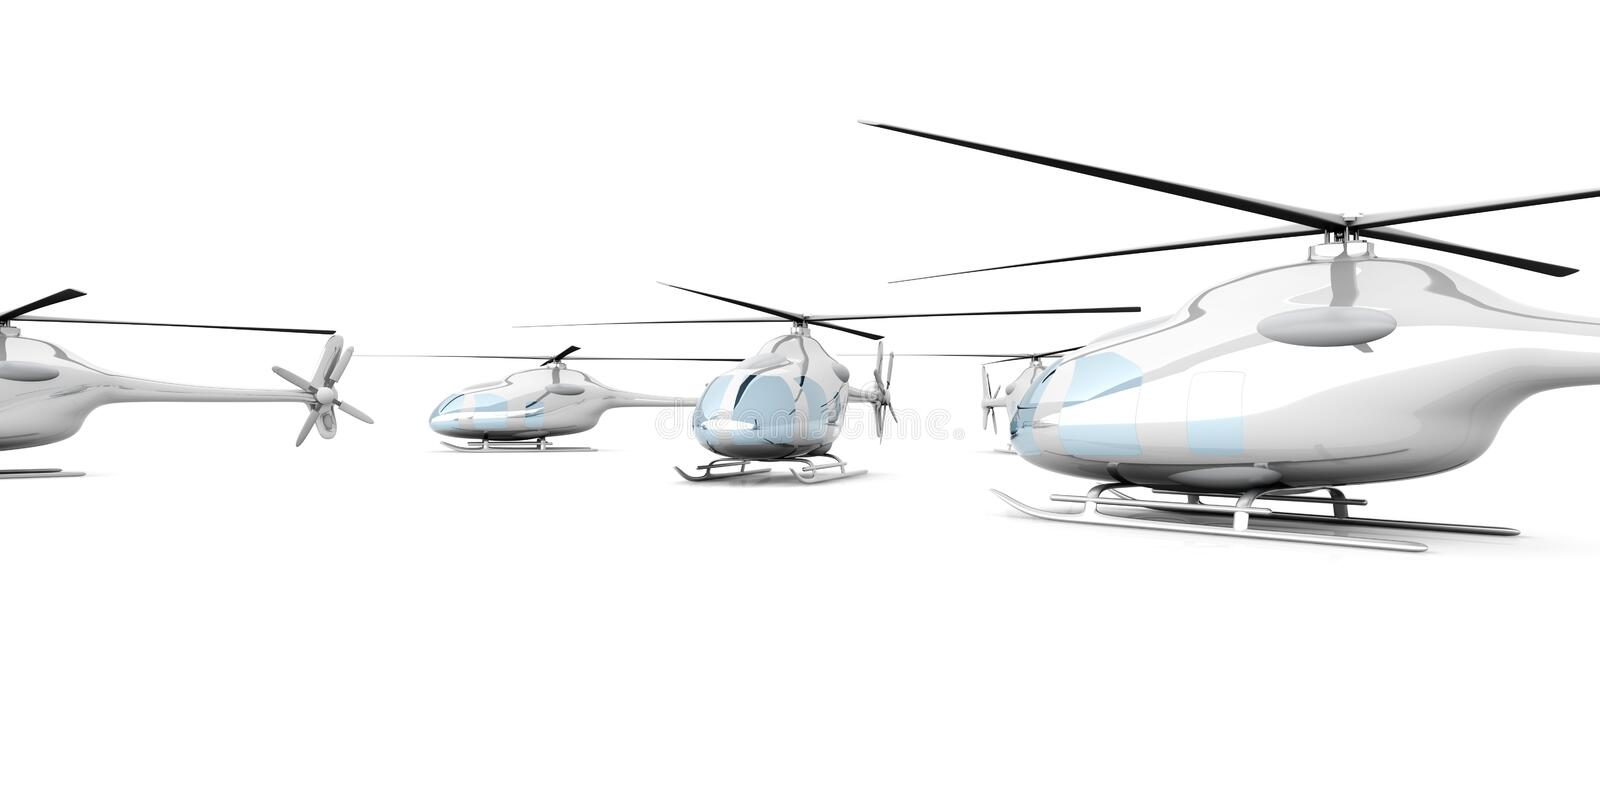 A group of Helicopters